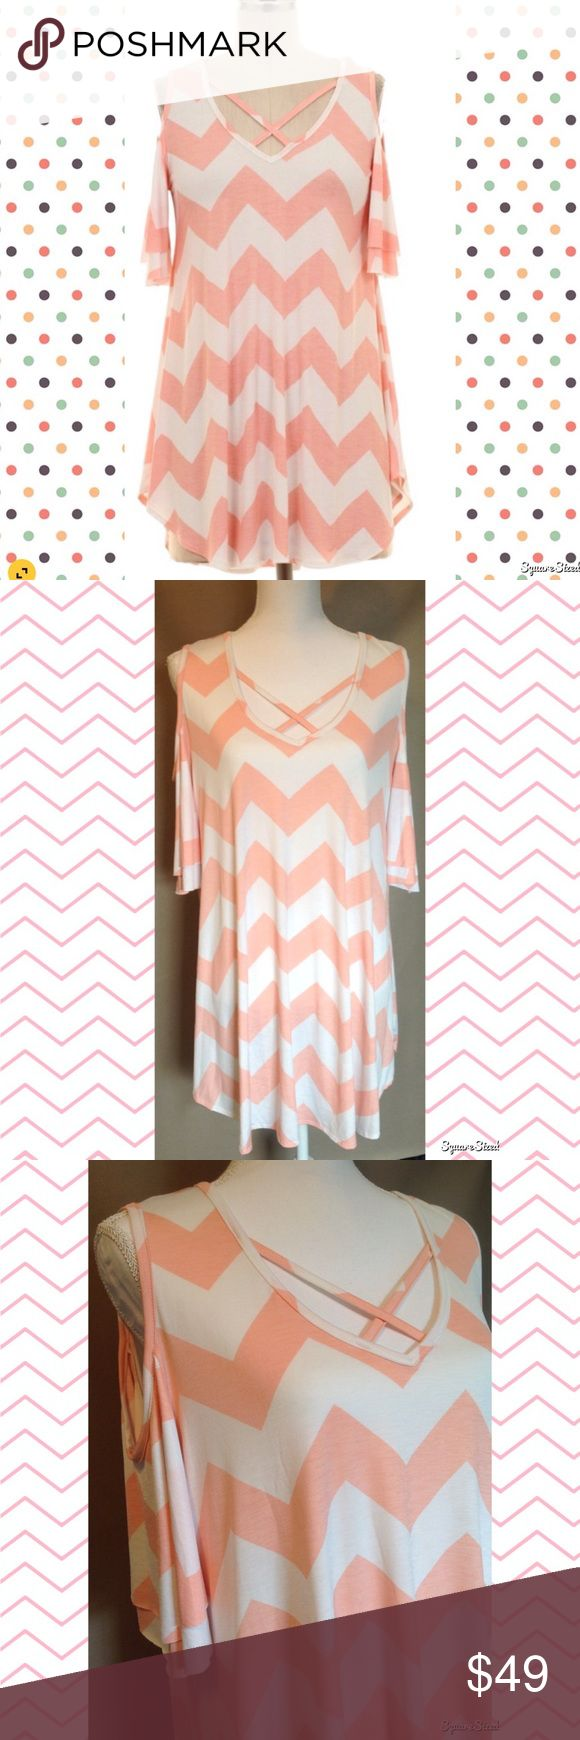 Cold Shoulder Chevron Tunic Top 🌸 Wear this adorable Chevron top when going out on a date, hanging with friends, house parties and girls night. 1X,2X,3X. 92% Polyester and 8% Spandex. Tops Tunics